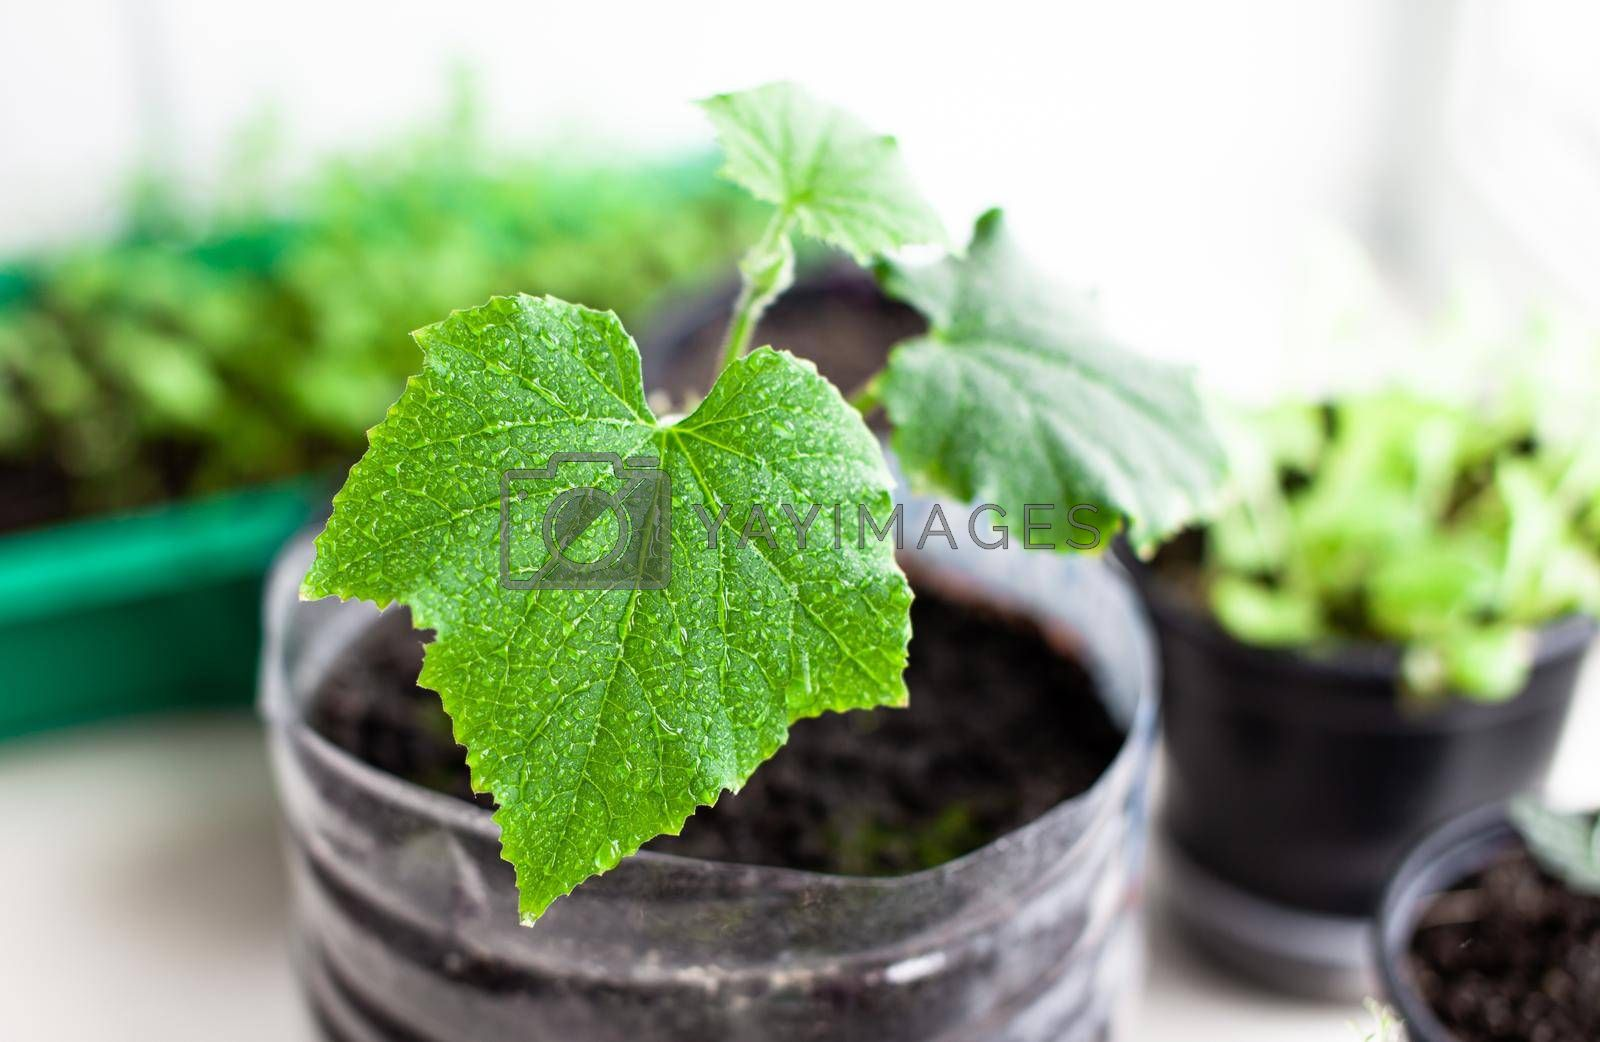 Seedlings of cucumbers and plants in flower pots near the window, a green leaf close-up. Growing food at home for an ecological and healthy lifestyle. Growing seedlings at home in the cold season